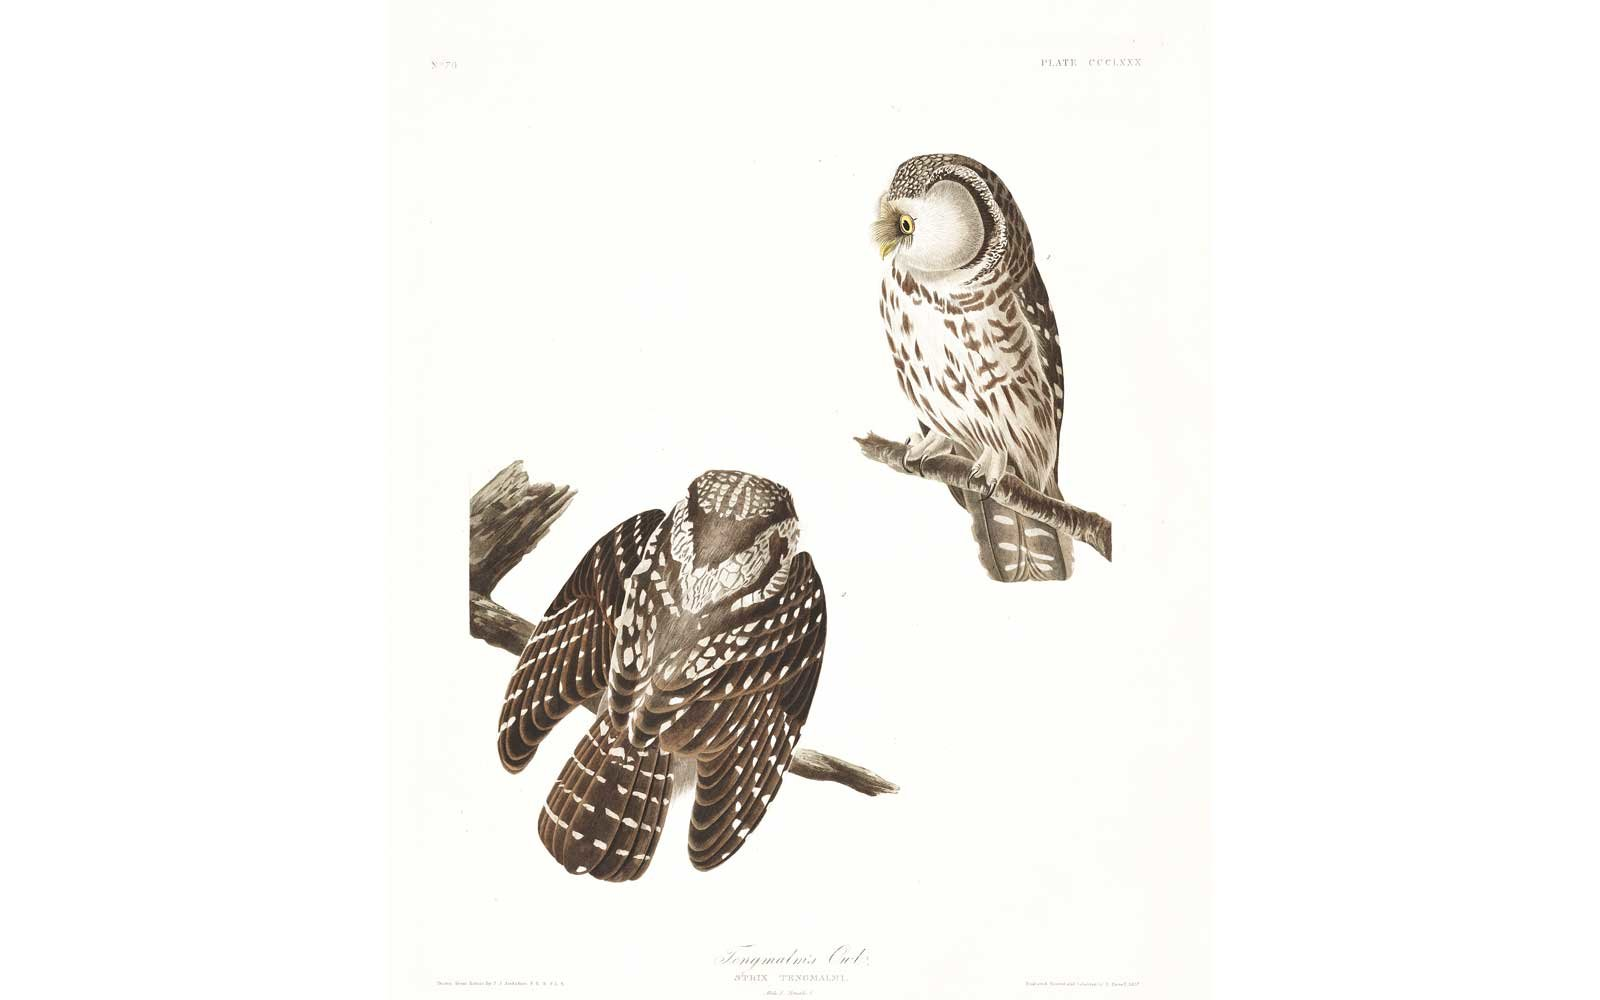 Audubon Birds of America - Tengmalms Owl